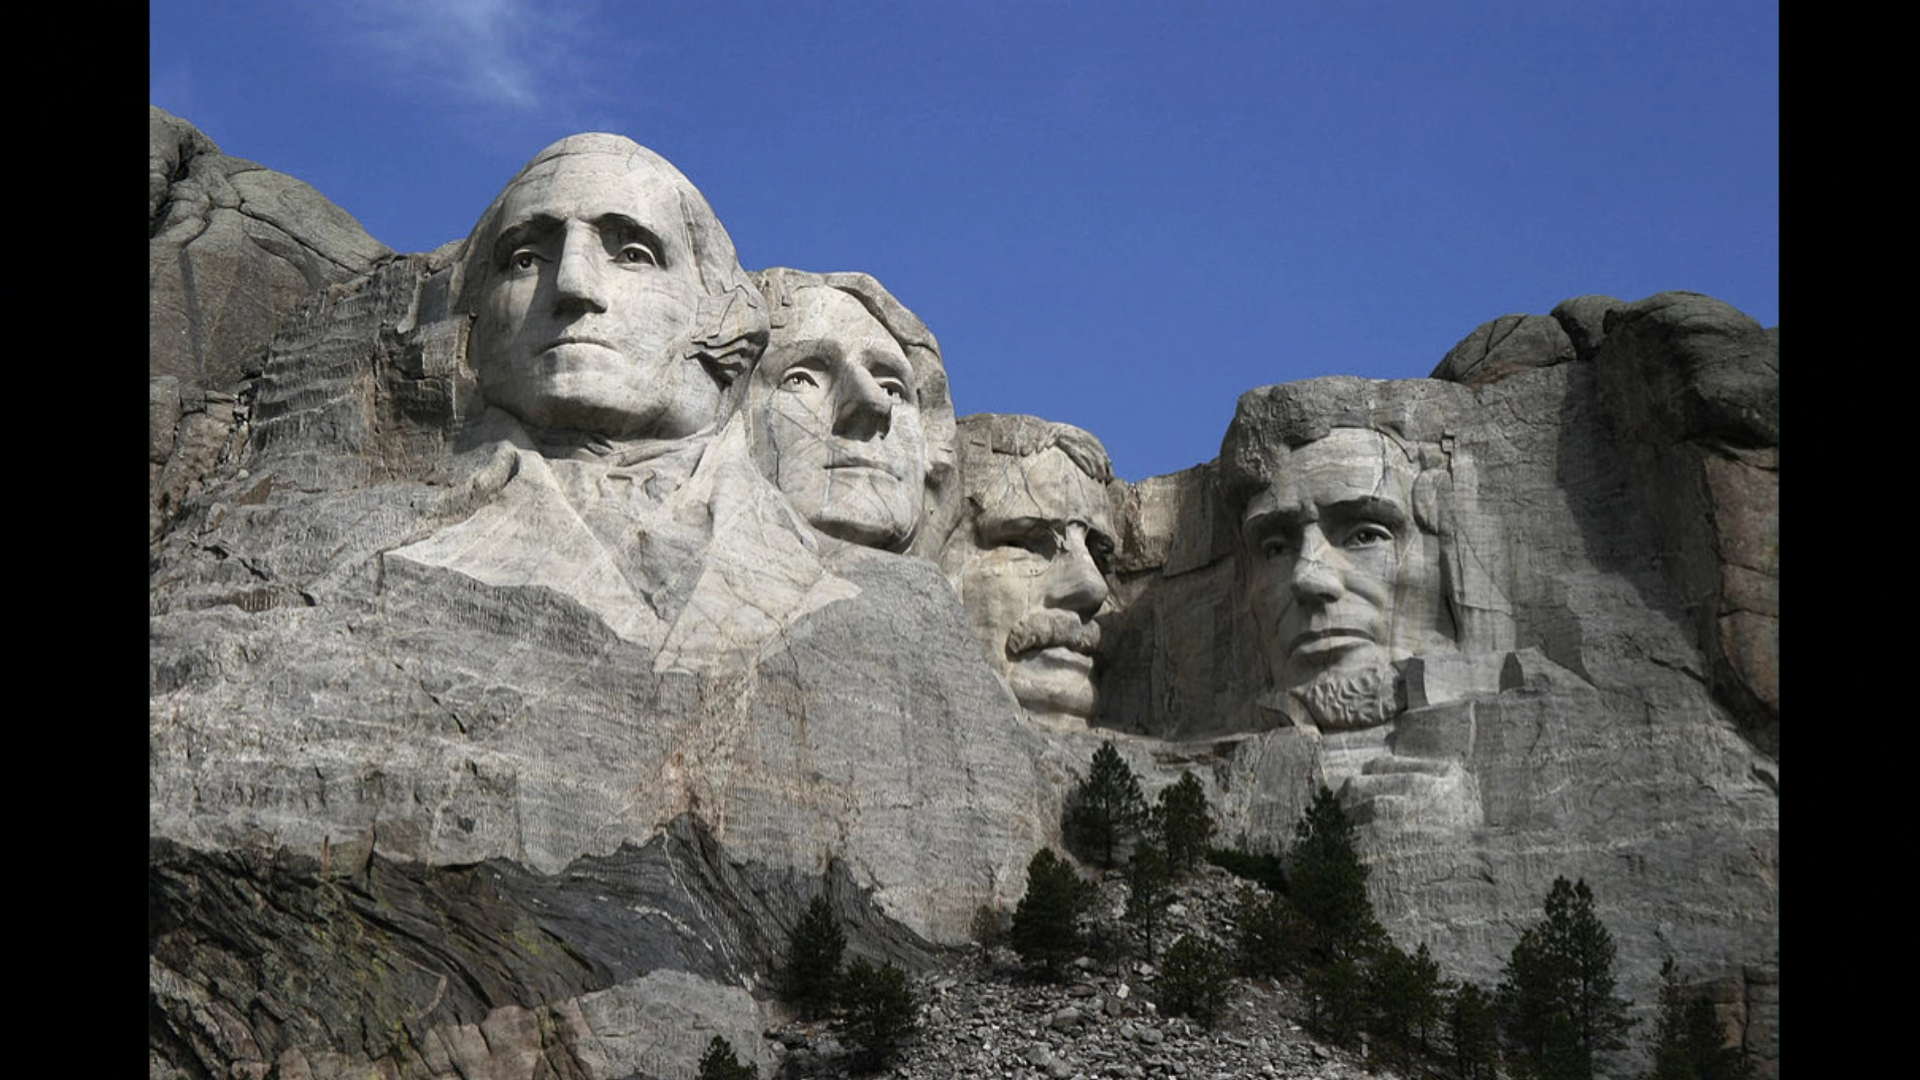 The façade on Mount Rushmore